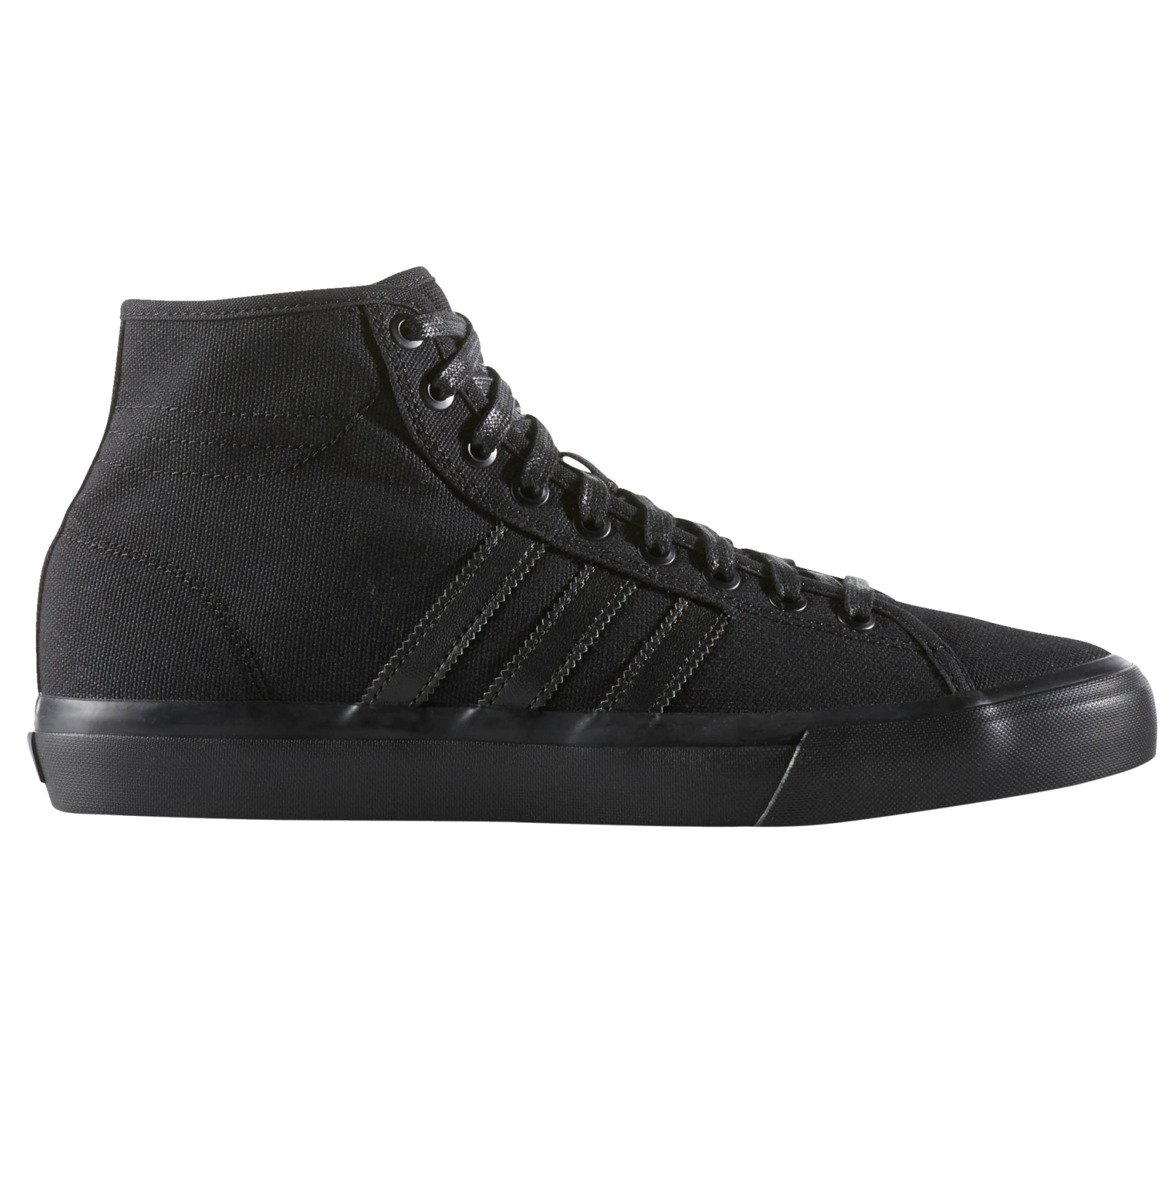 f8192f3c1e99d shoes adidas skateboarding matchcourt high rx cblack/cblack/cblack black |  Shoes \ Adidas Skateboarding SALE \ Sale 50% -70% \ Shoes Brands \ Adidas  ...